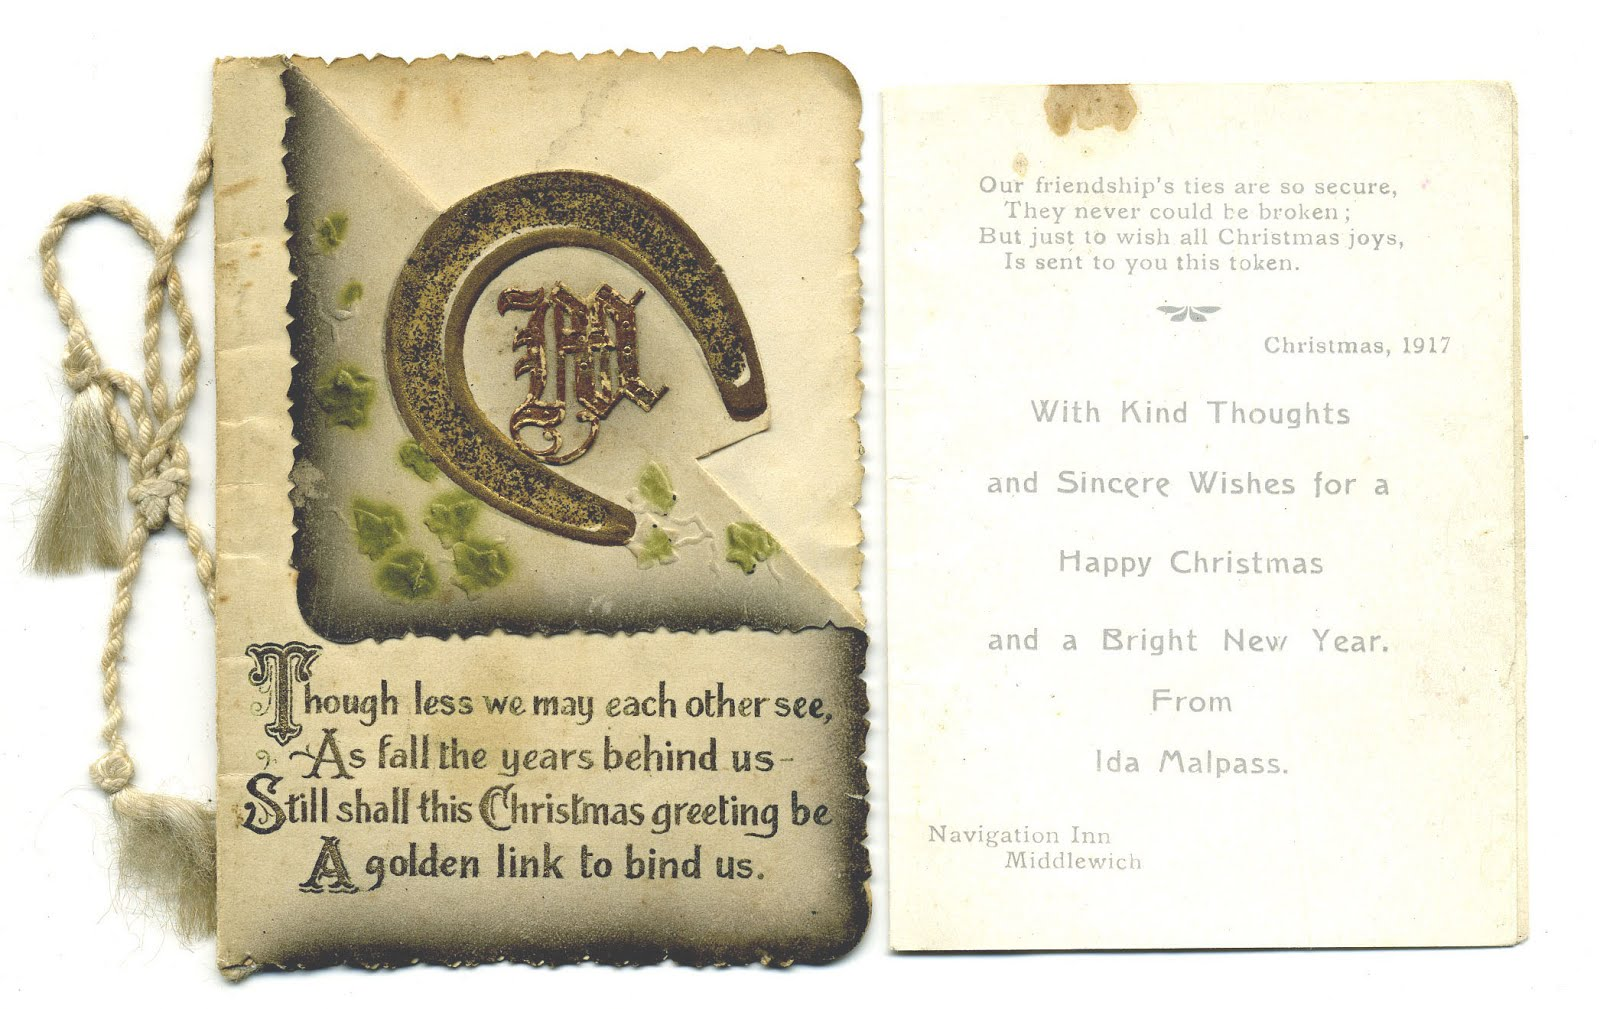 CHRISTMAS GREETINGS FROM THE NAVIGATION INN 1917